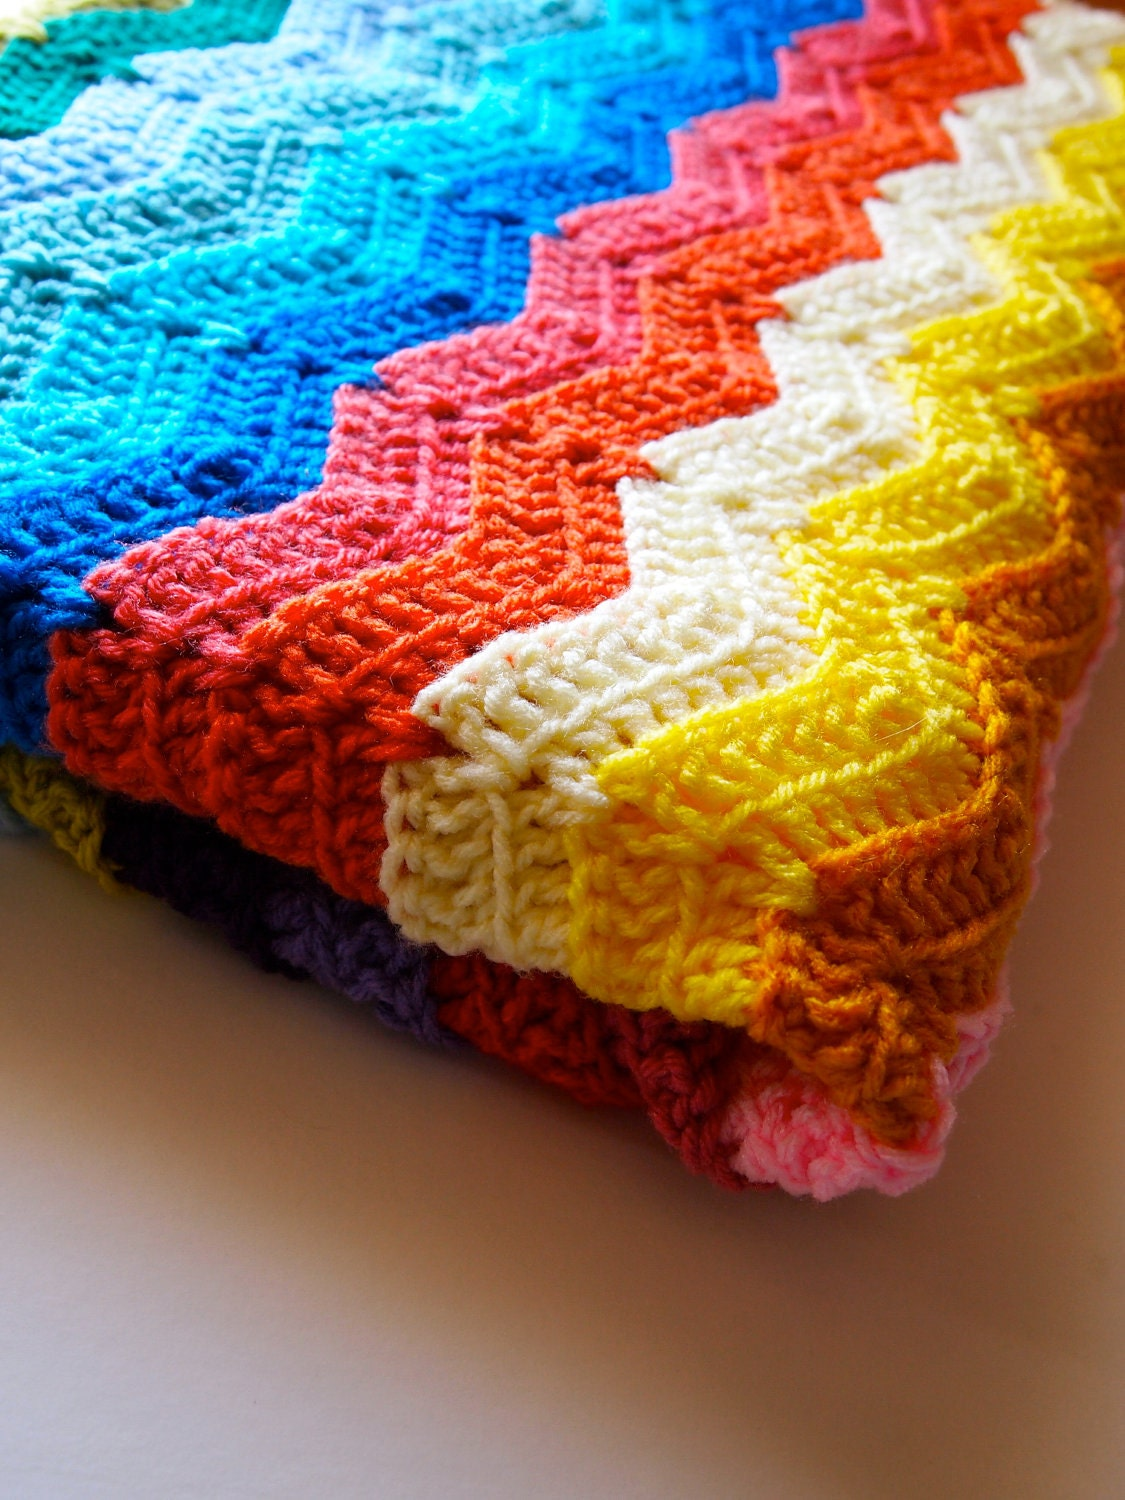 Rainbow ripple crochet blanket, crochet afghan blanket in rainbow stripes, made to order